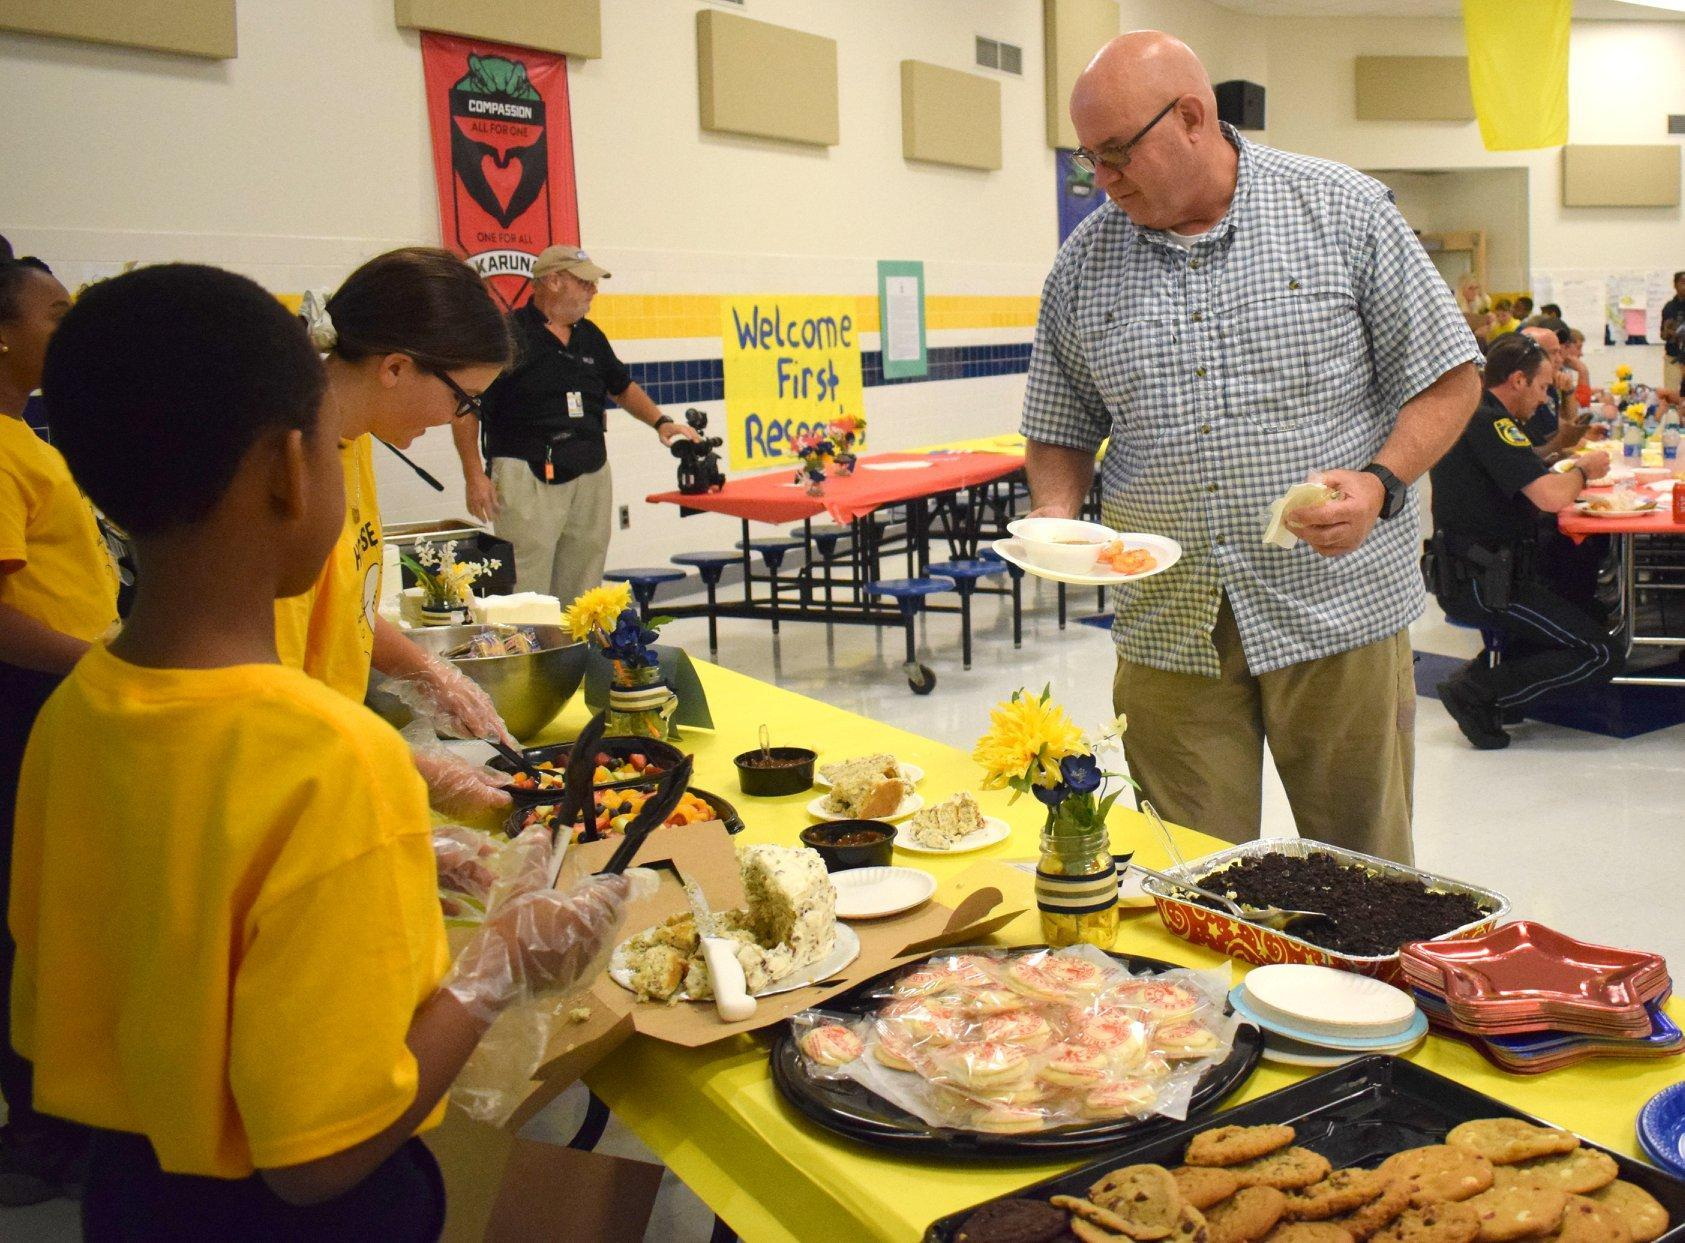 SRA Hosts Lunch for First Responders